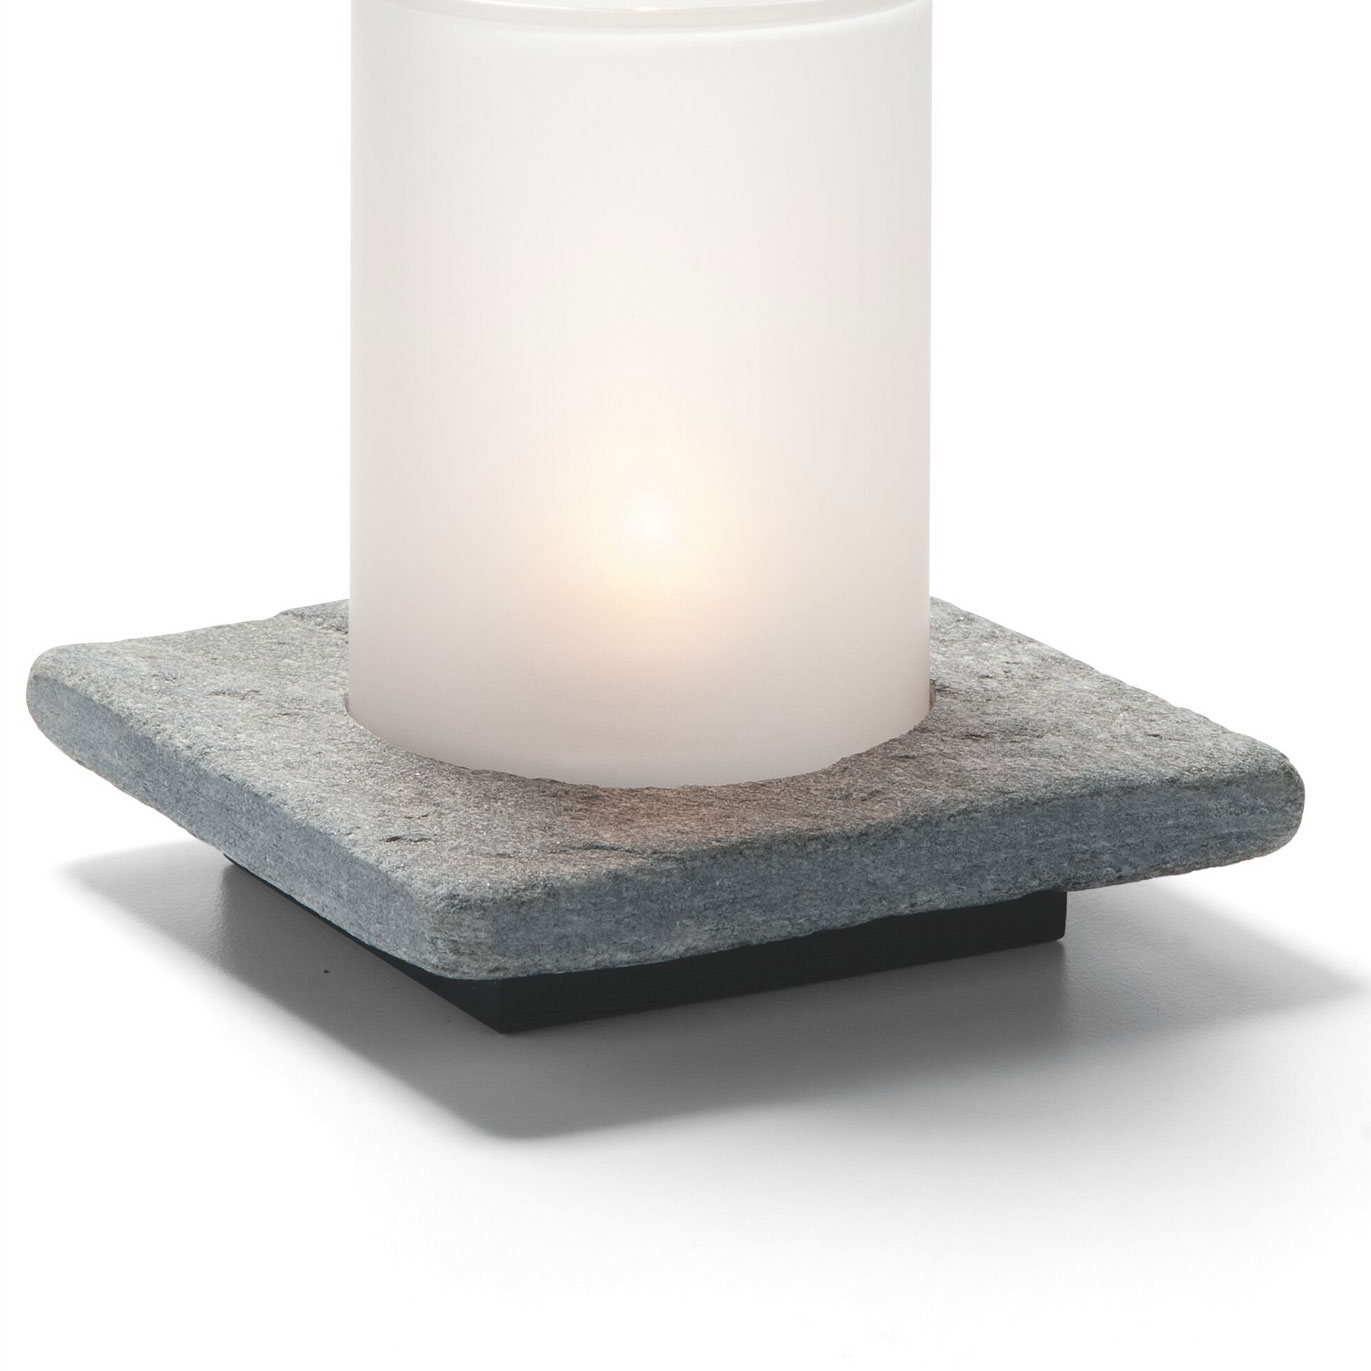 Hollowick ZEN-GSL Square Lamp Base, Single, Stone, Grey Slate, 4x4.88-in